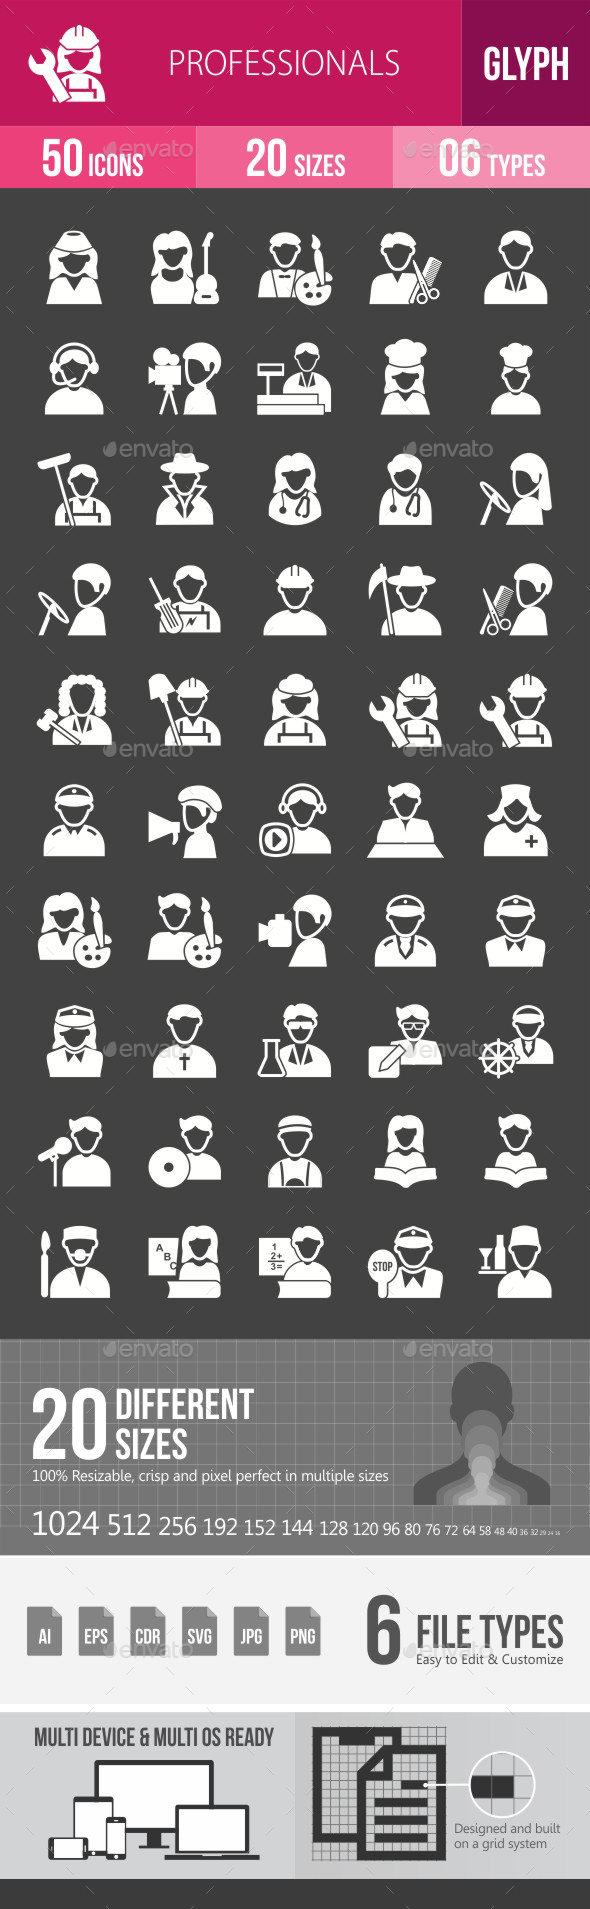 Professionals Glyph Inverted Icons - Icons